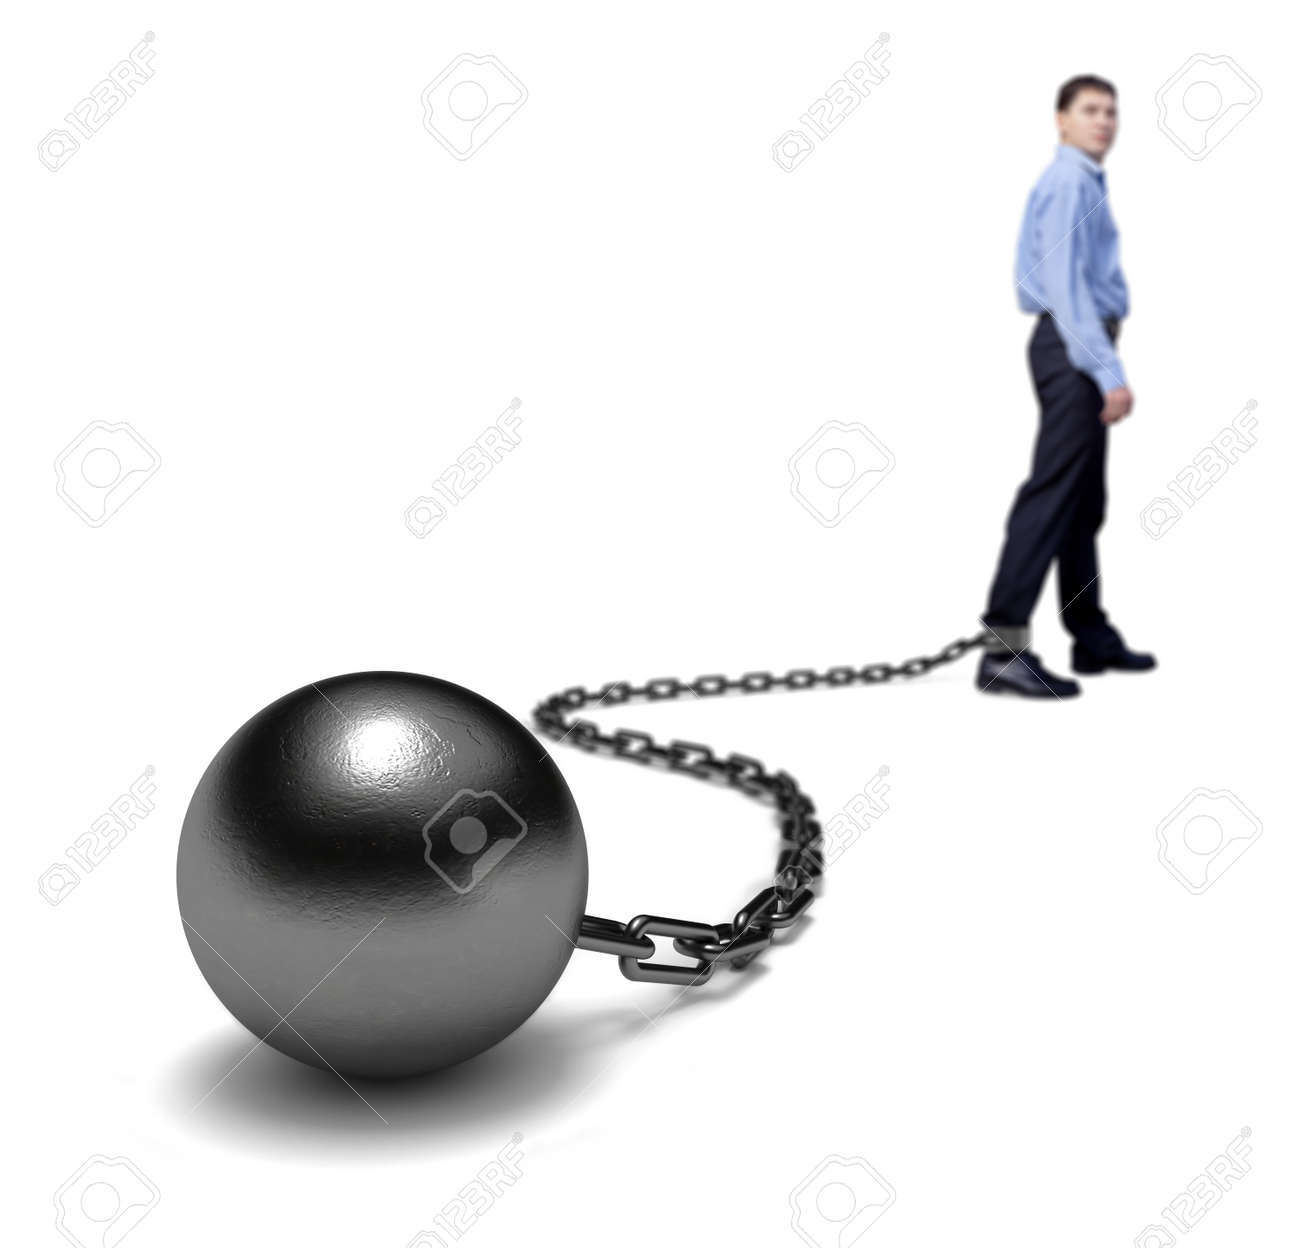 Man's legs dragging a ball and chain, selective focus. Stock Photo - 11902554